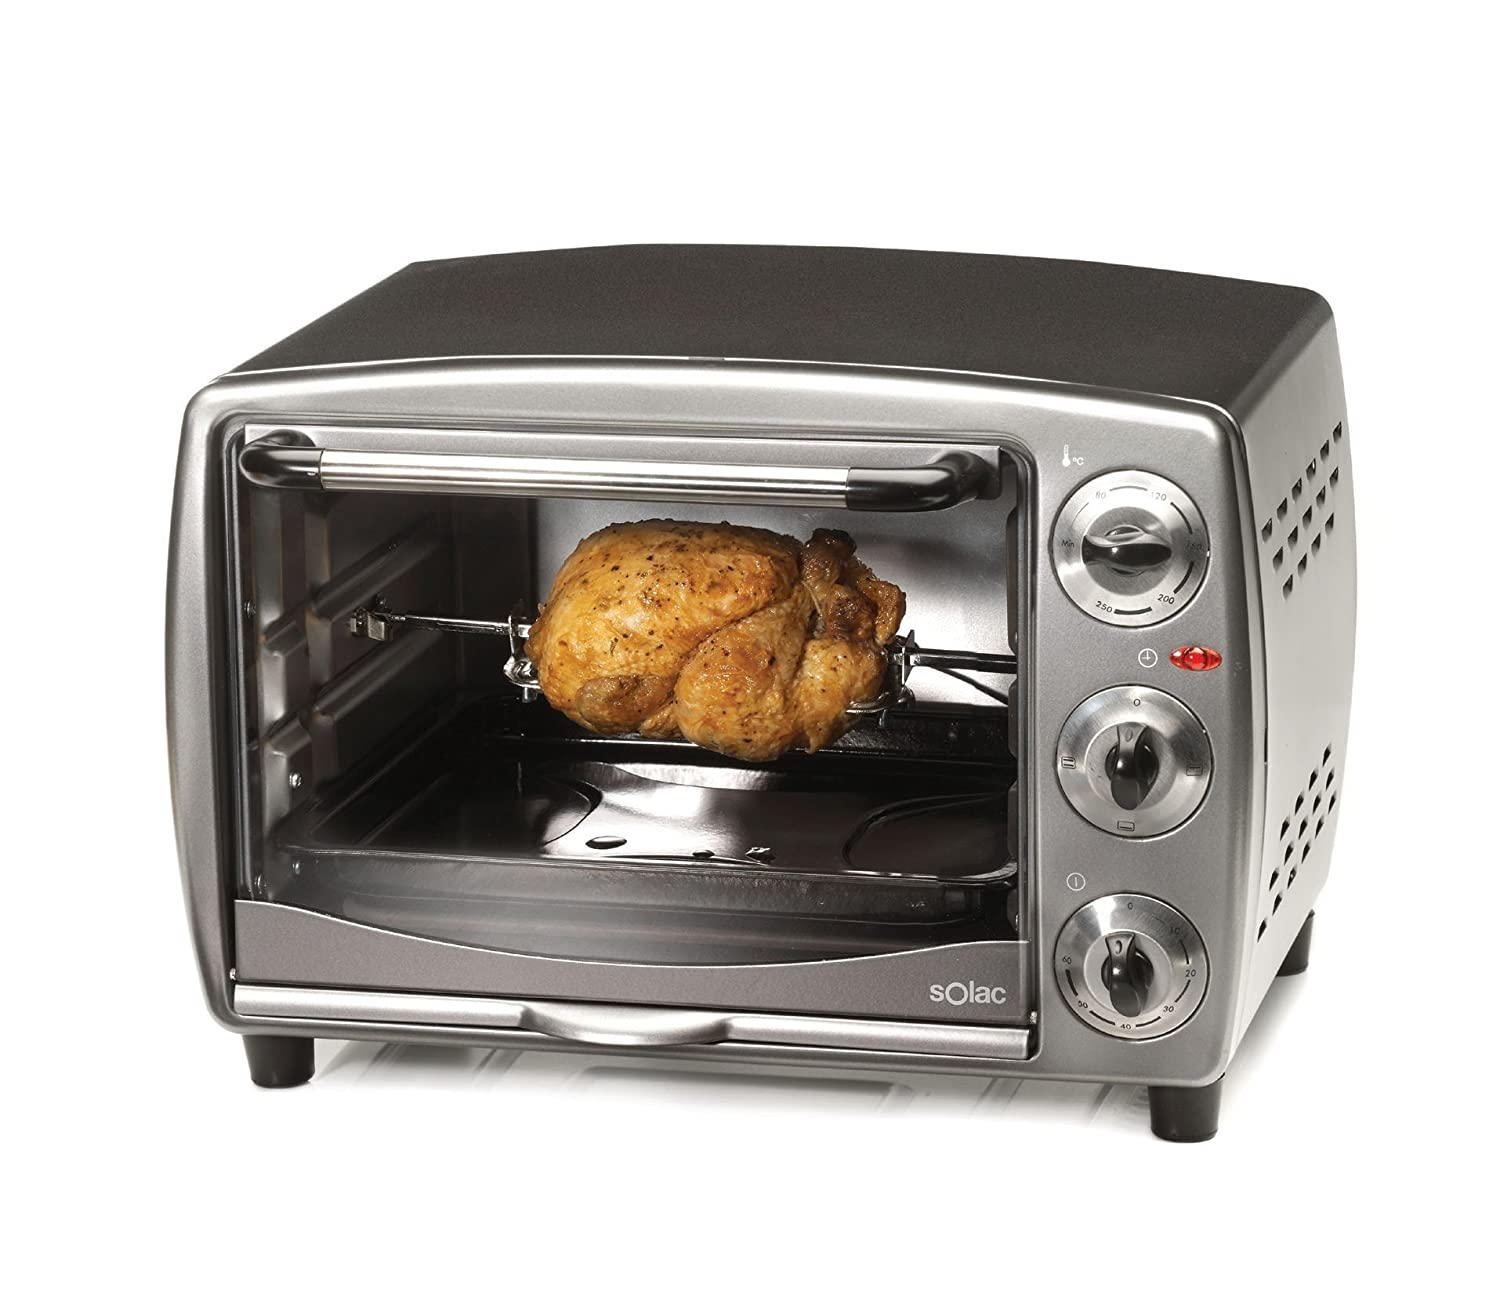 Amazon.com: Solac HO6019 Backofen 19 L: Kitchen & Dining